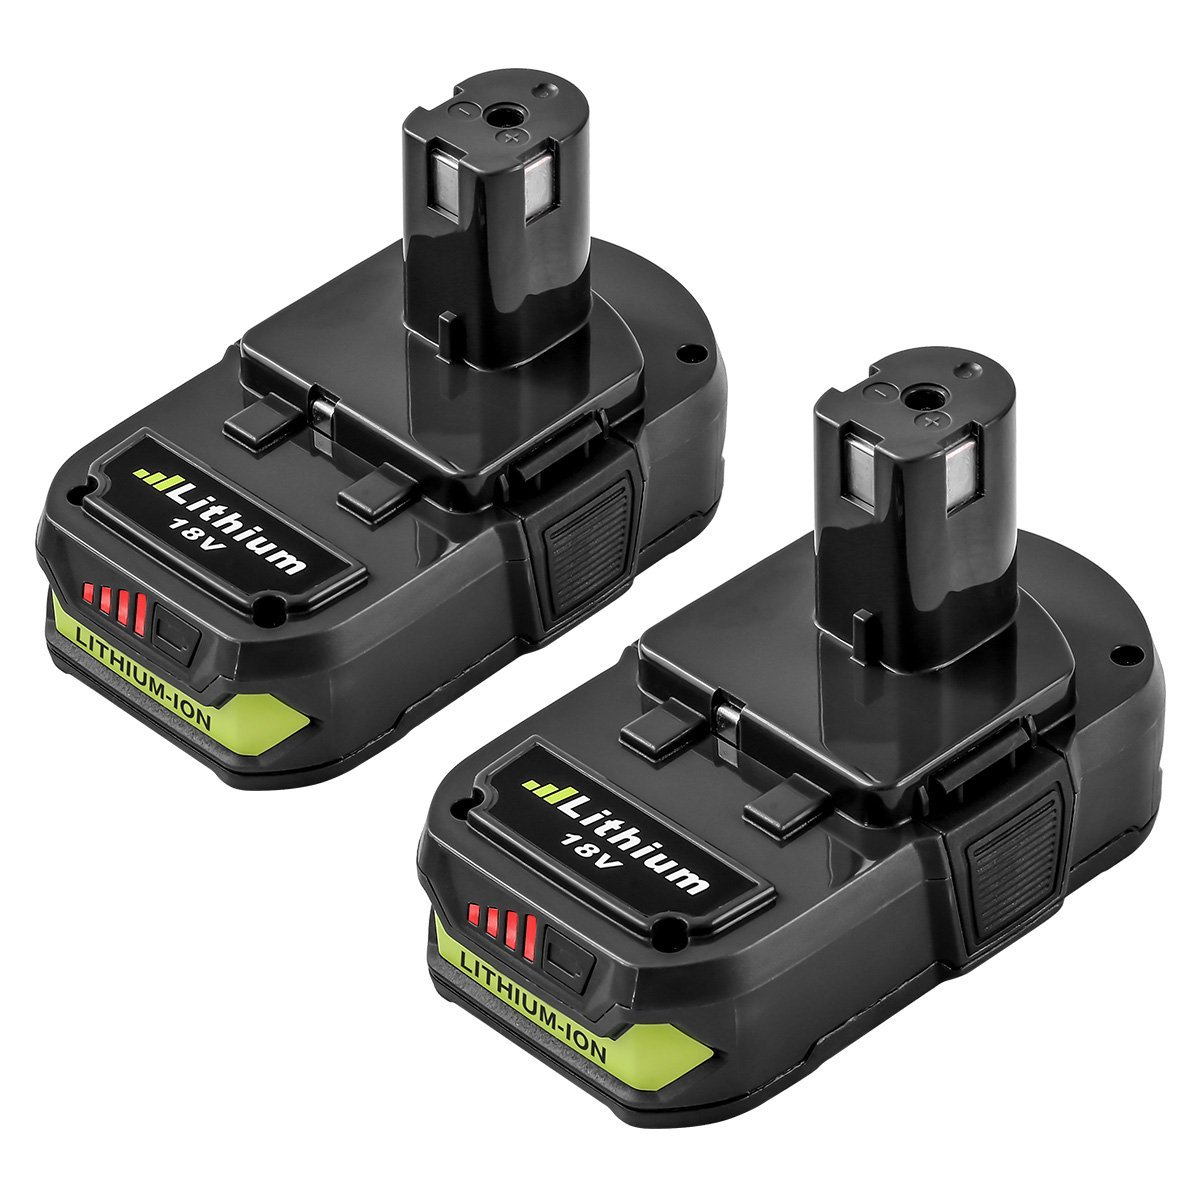 P107 2 5Ah Replace for Ryobi 18V Battery ONE+ P102 P103 P104 P105 P108 P109  Cordless Power Tools 2 Packs